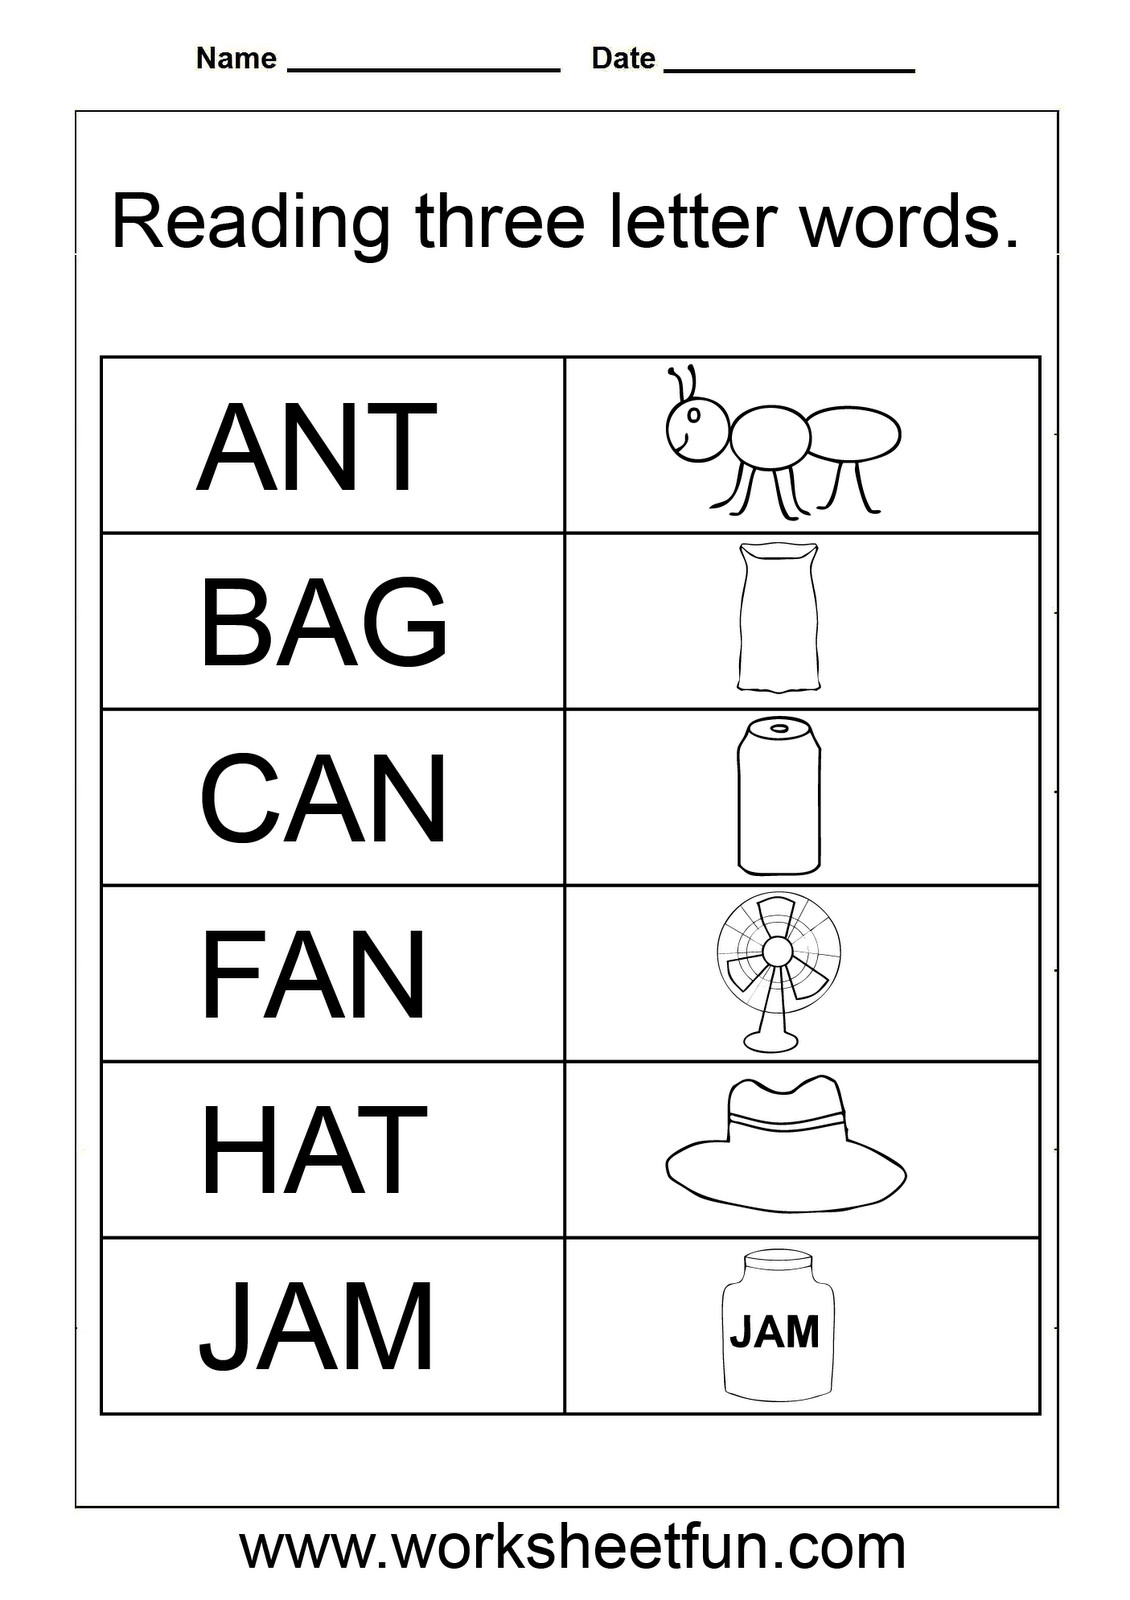 Kindergarten Spelling Worksheets 3 Letter Words Worksheets for Kindergarten